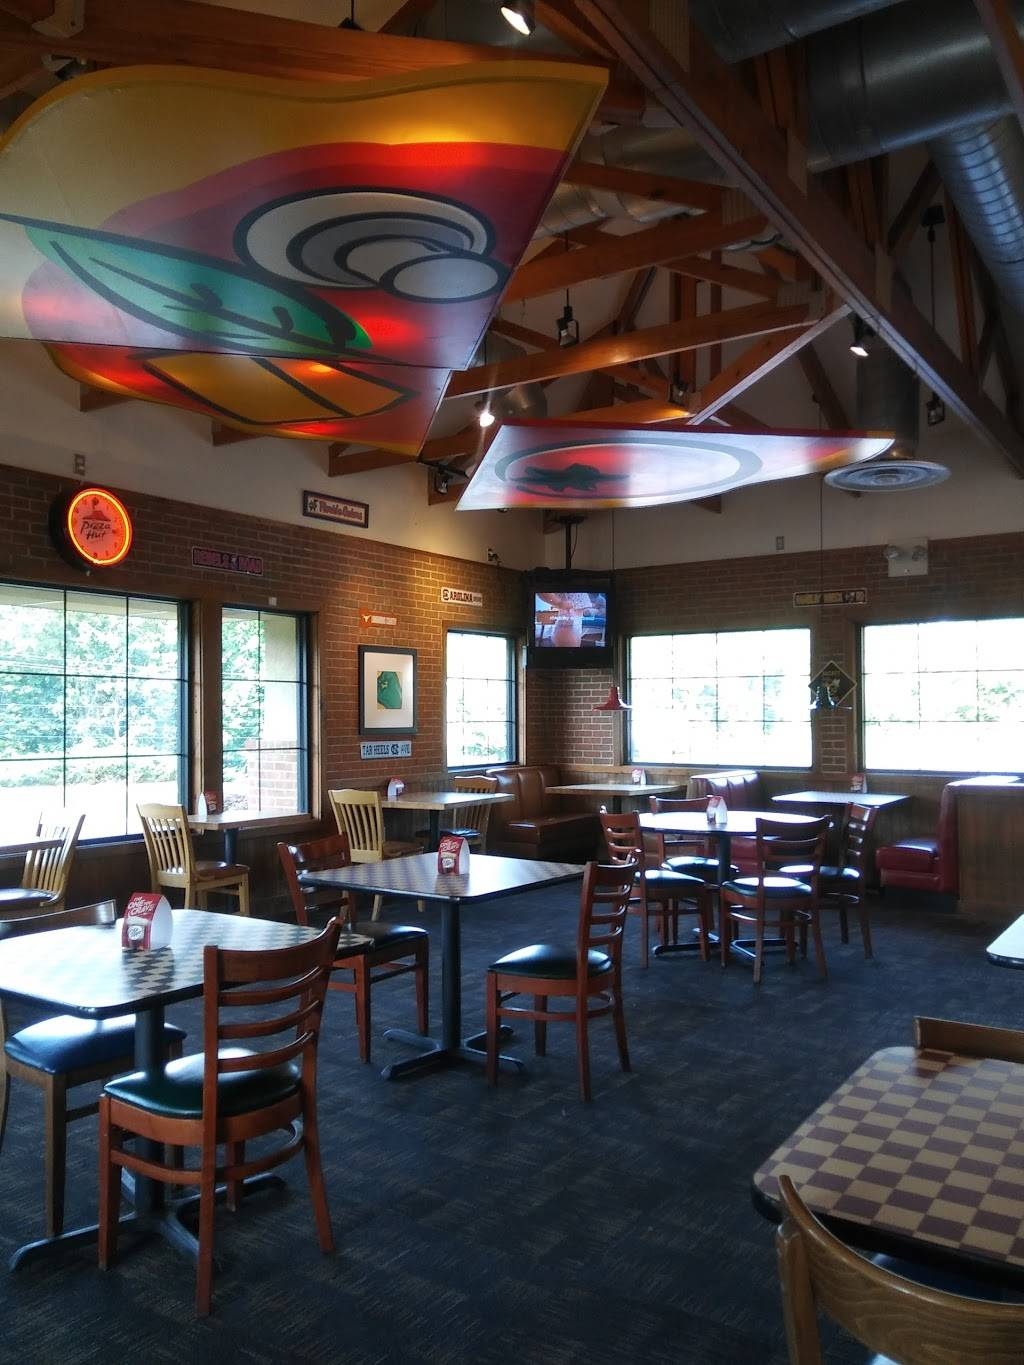 Pizza Hut - meal delivery  | Photo 3 of 5 | Address: 4985 Flat Shoals Pkwy, Decatur, GA 30034, USA | Phone: (770) 987-4100